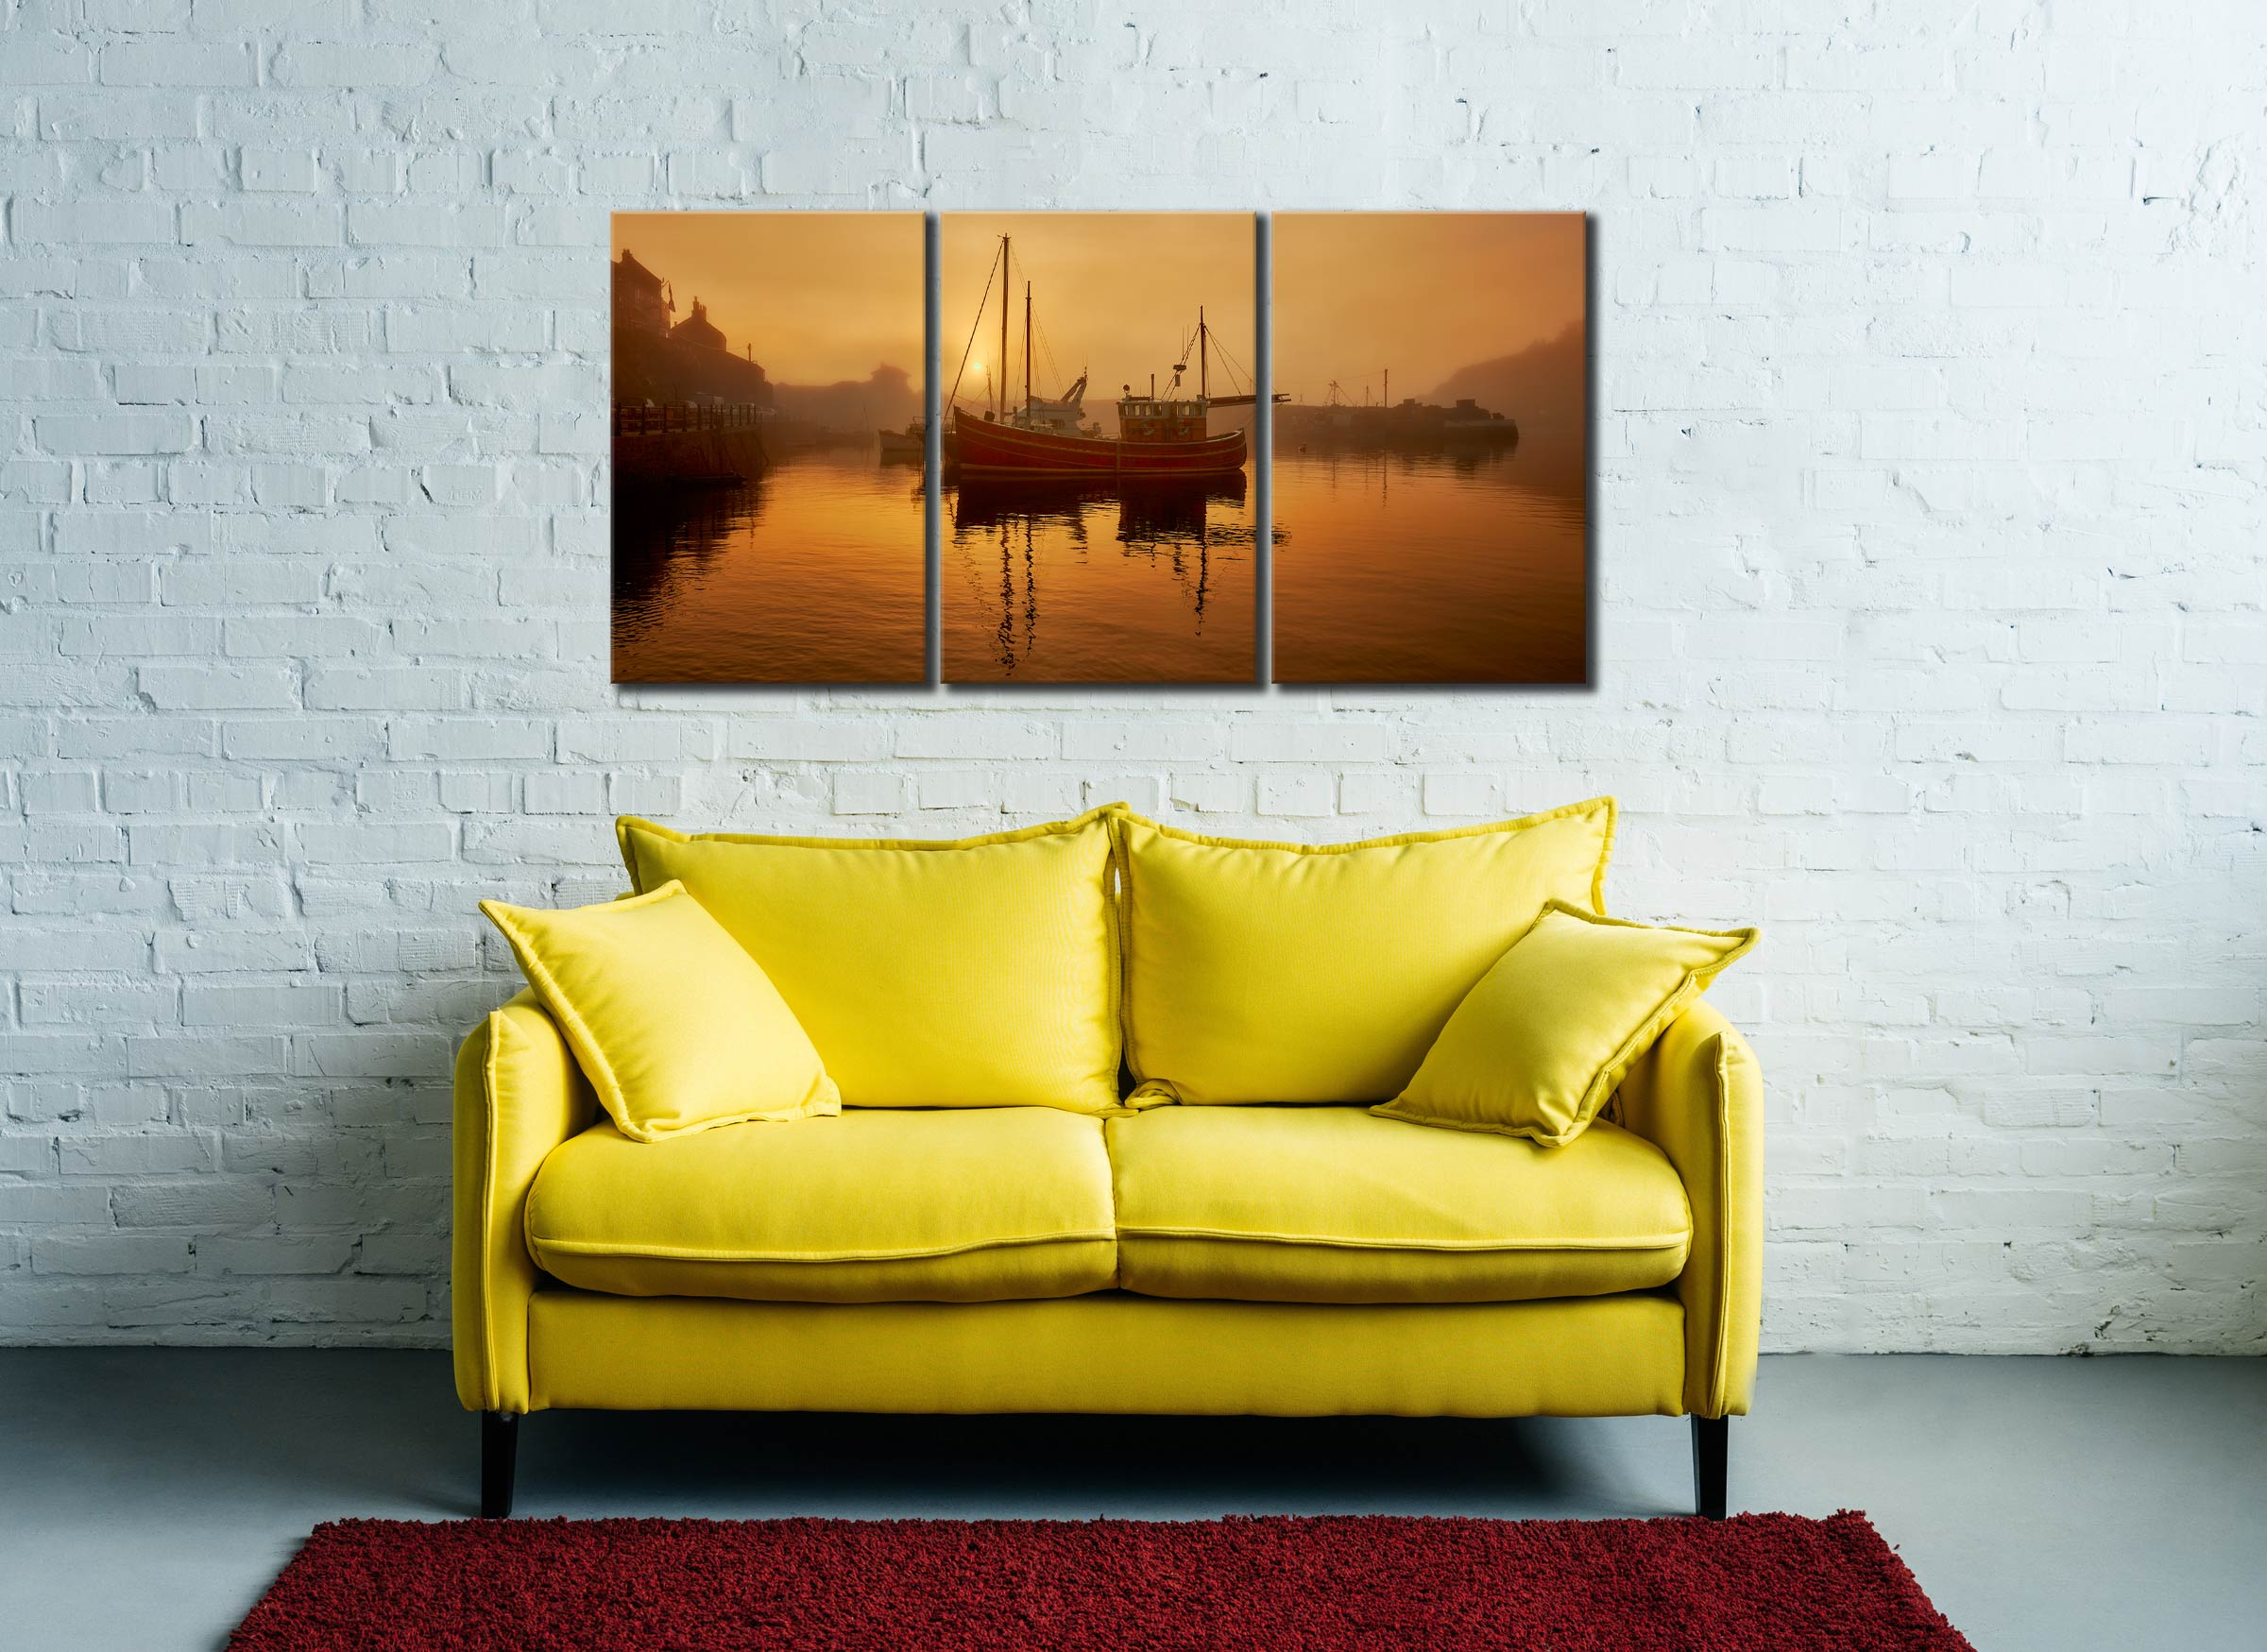 Misty Mevagissy Harbour - 3 Panel Canvas on Wall